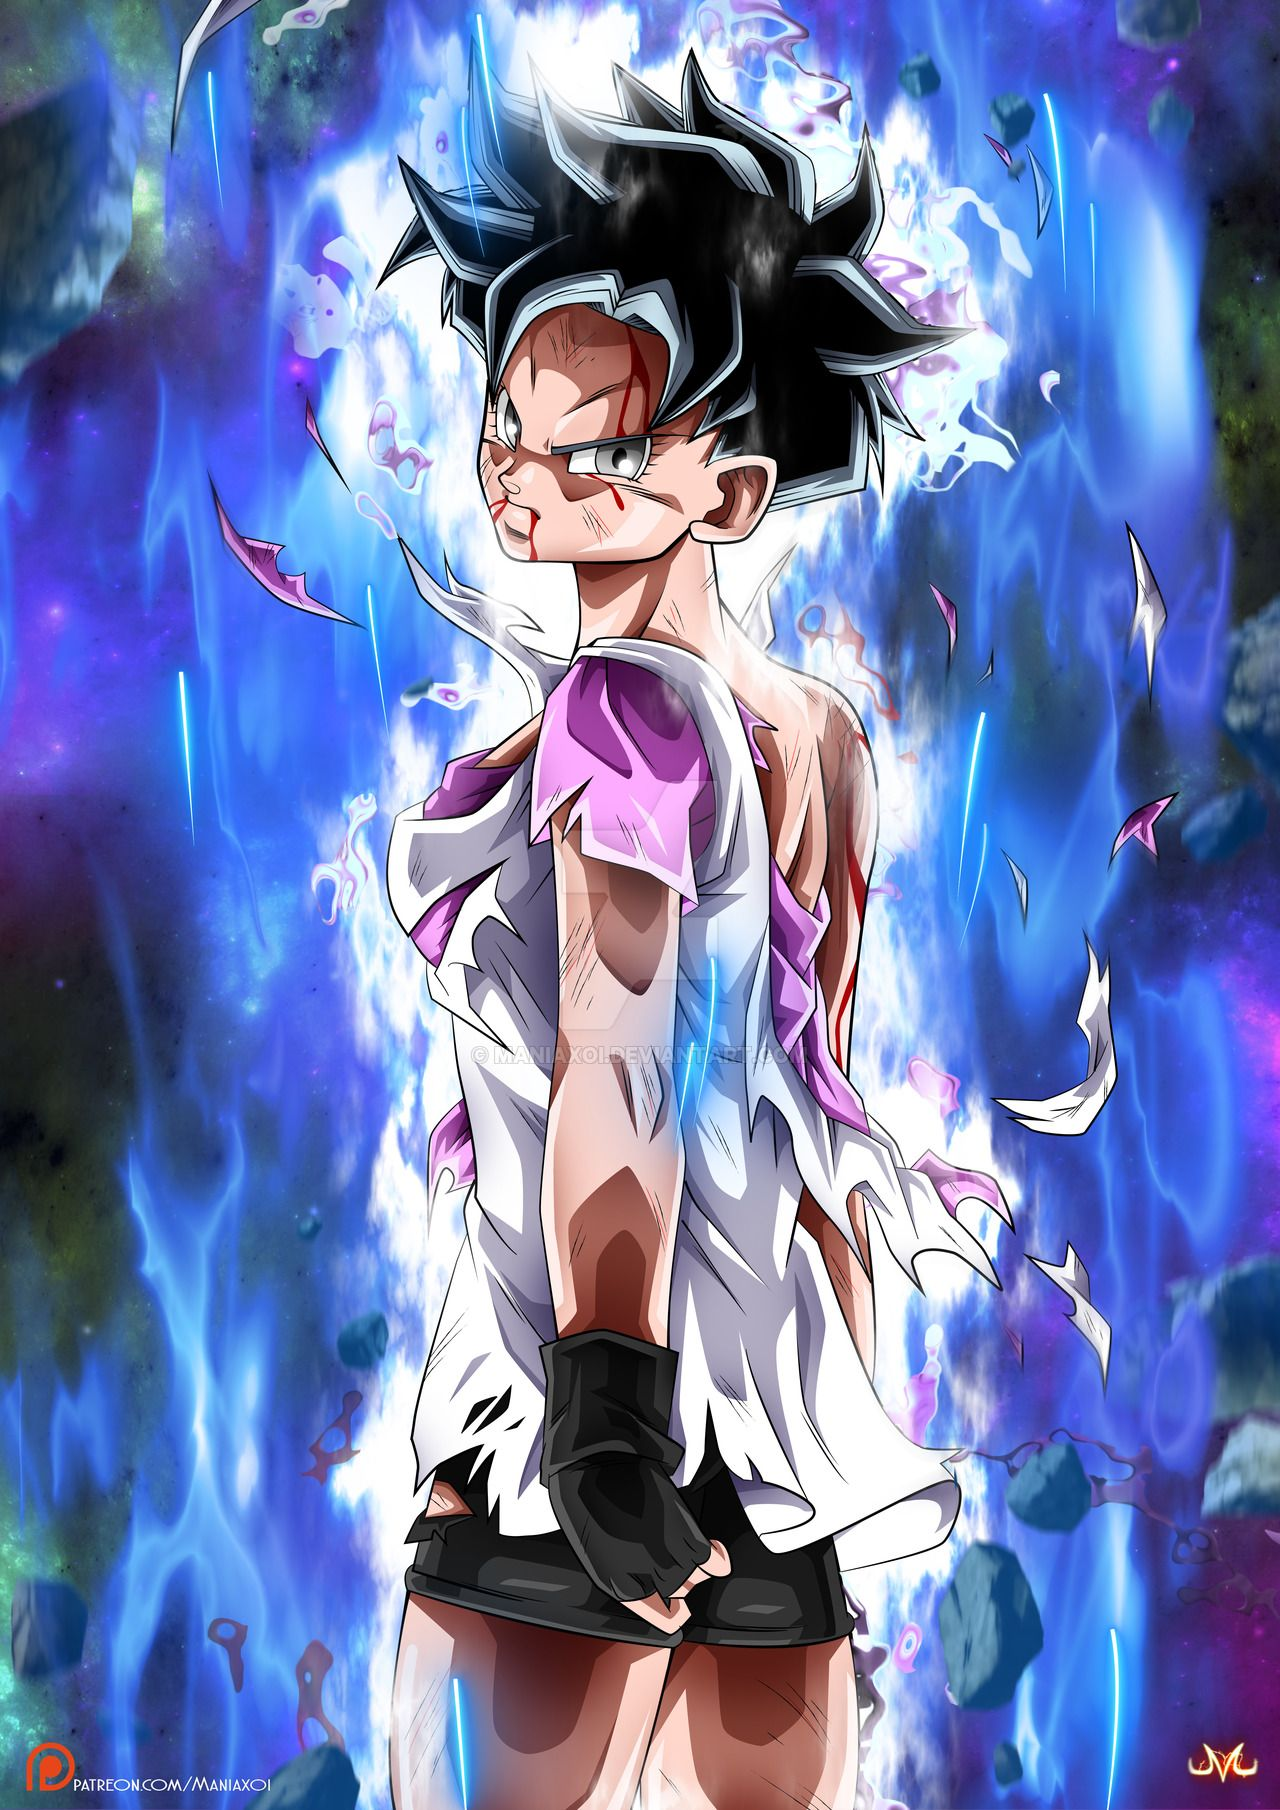 Videl 1080x1810 live wallpaper in comments beautiful - Dbz fantasy anime ...